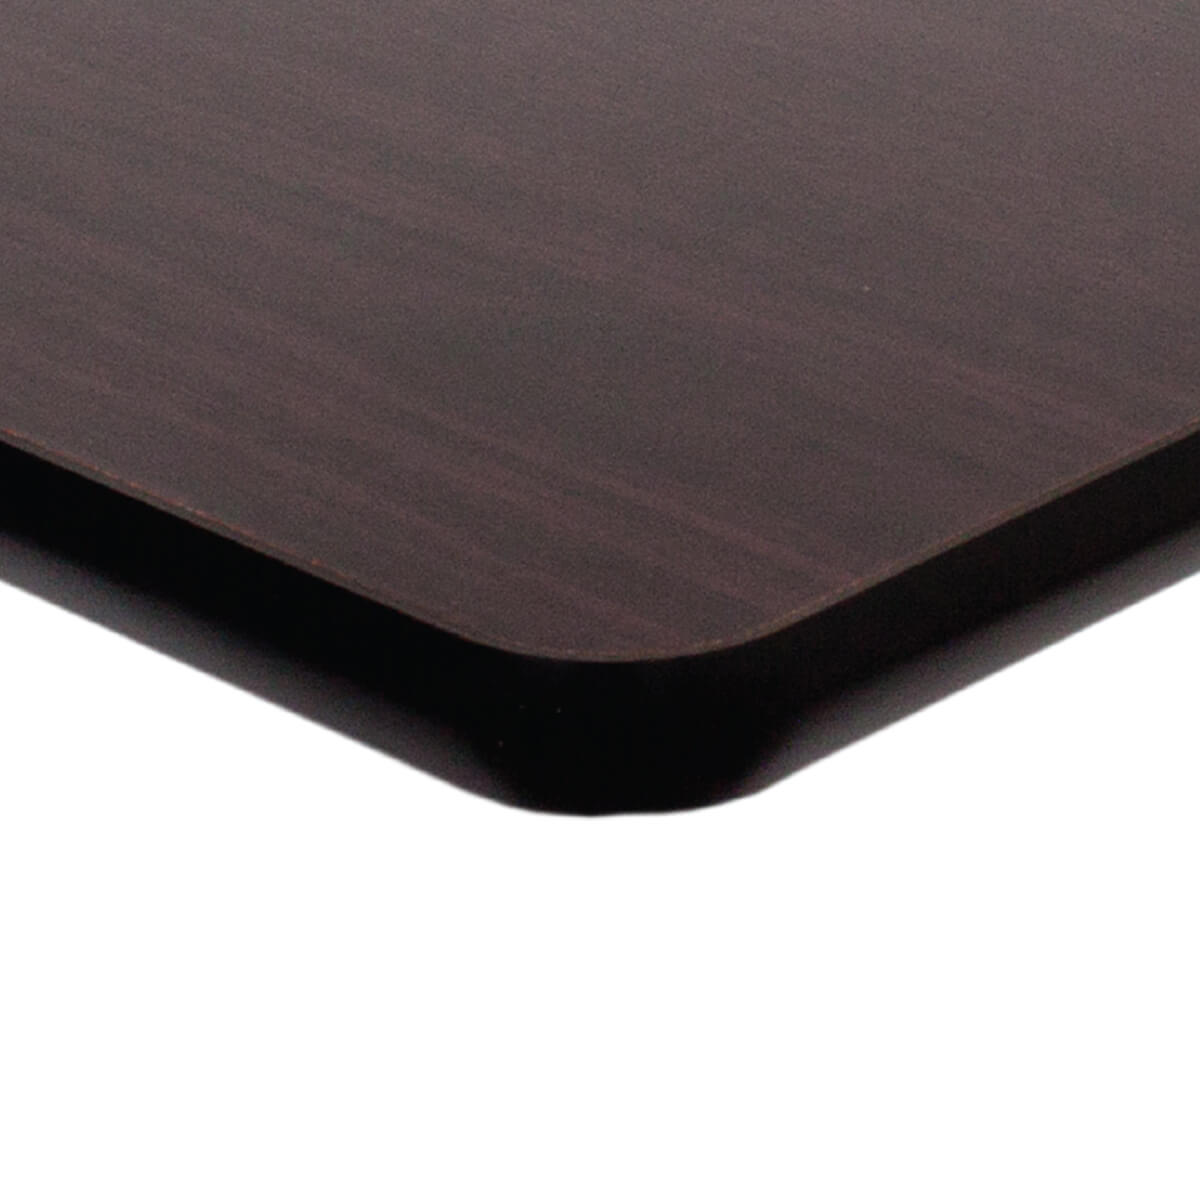 _0000s_0007_Double Sided Laminate Table Top